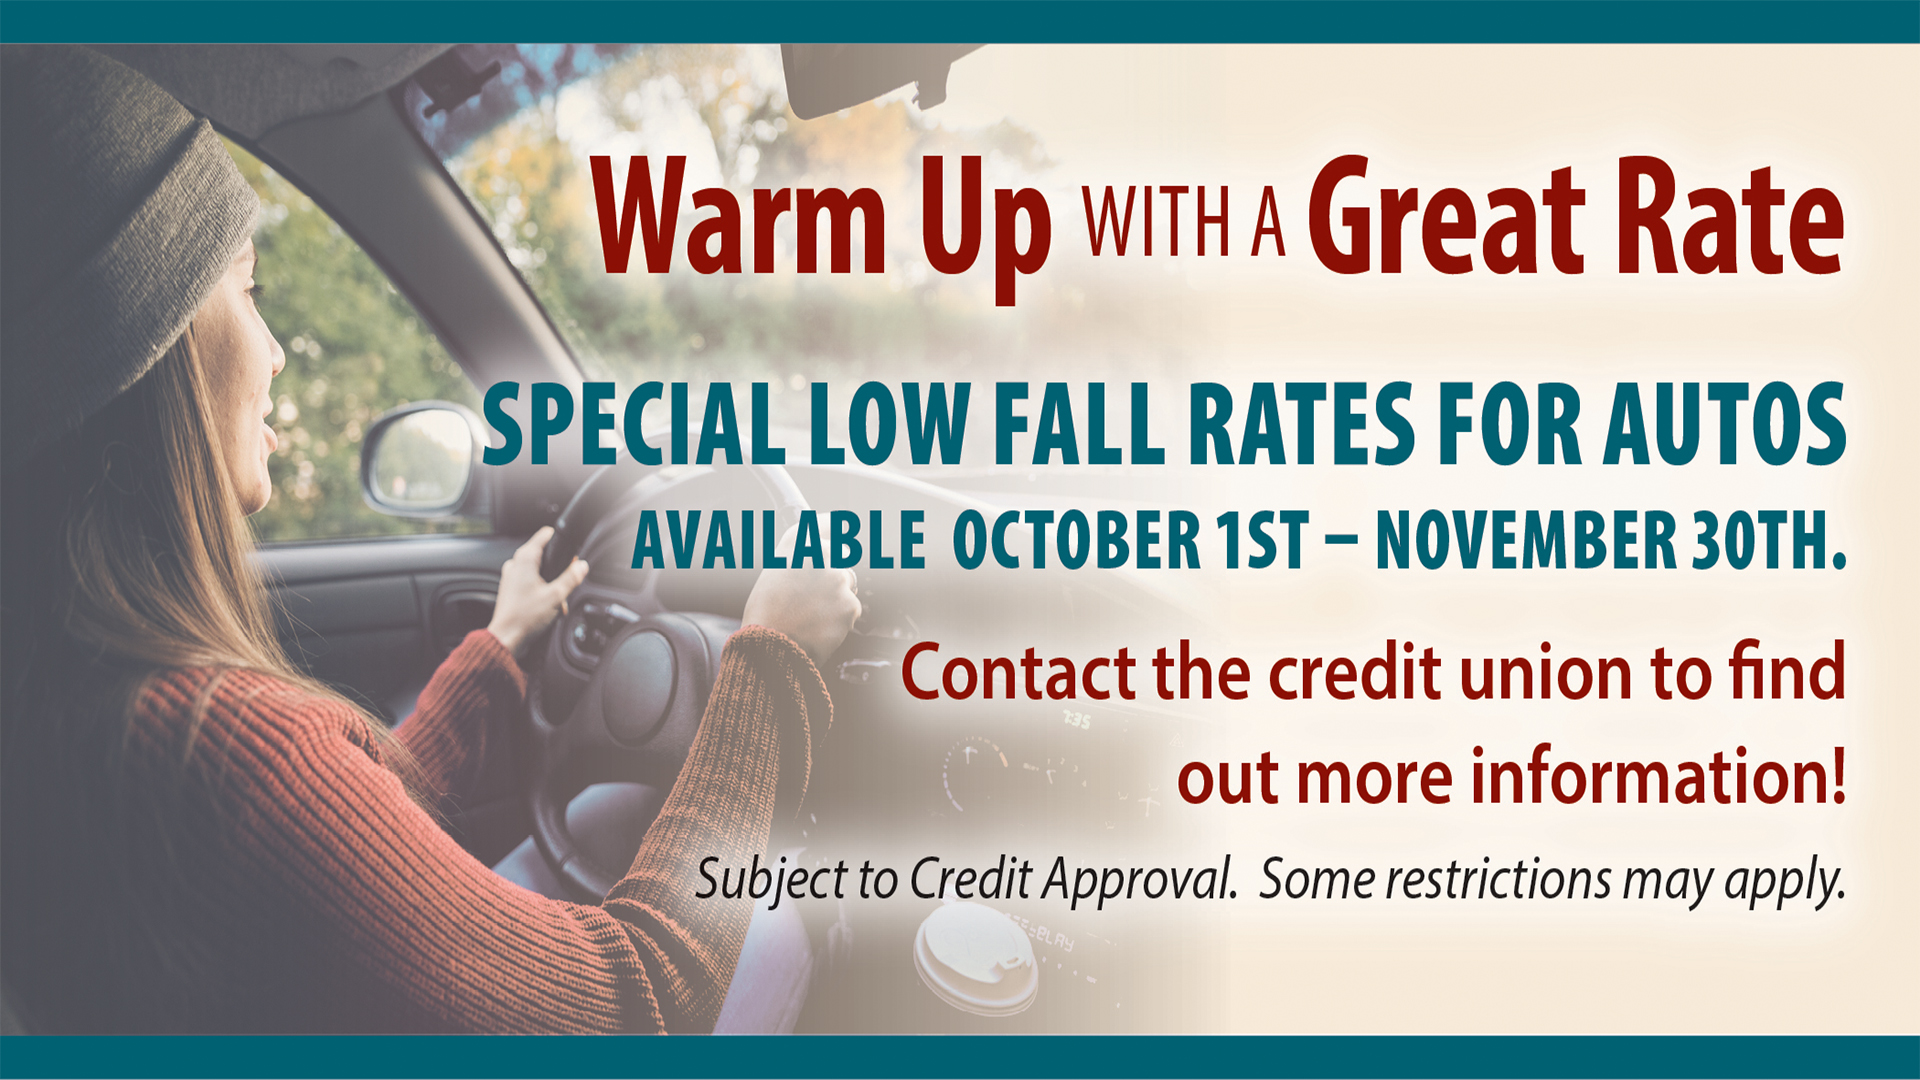 Warm up with a great rate! October 1st - November 30th special rates on all autos financed with Mohave FCU. some restrictions may apply. All loans are subject to credit approval. Some restrictions may apply. Member NCUA.